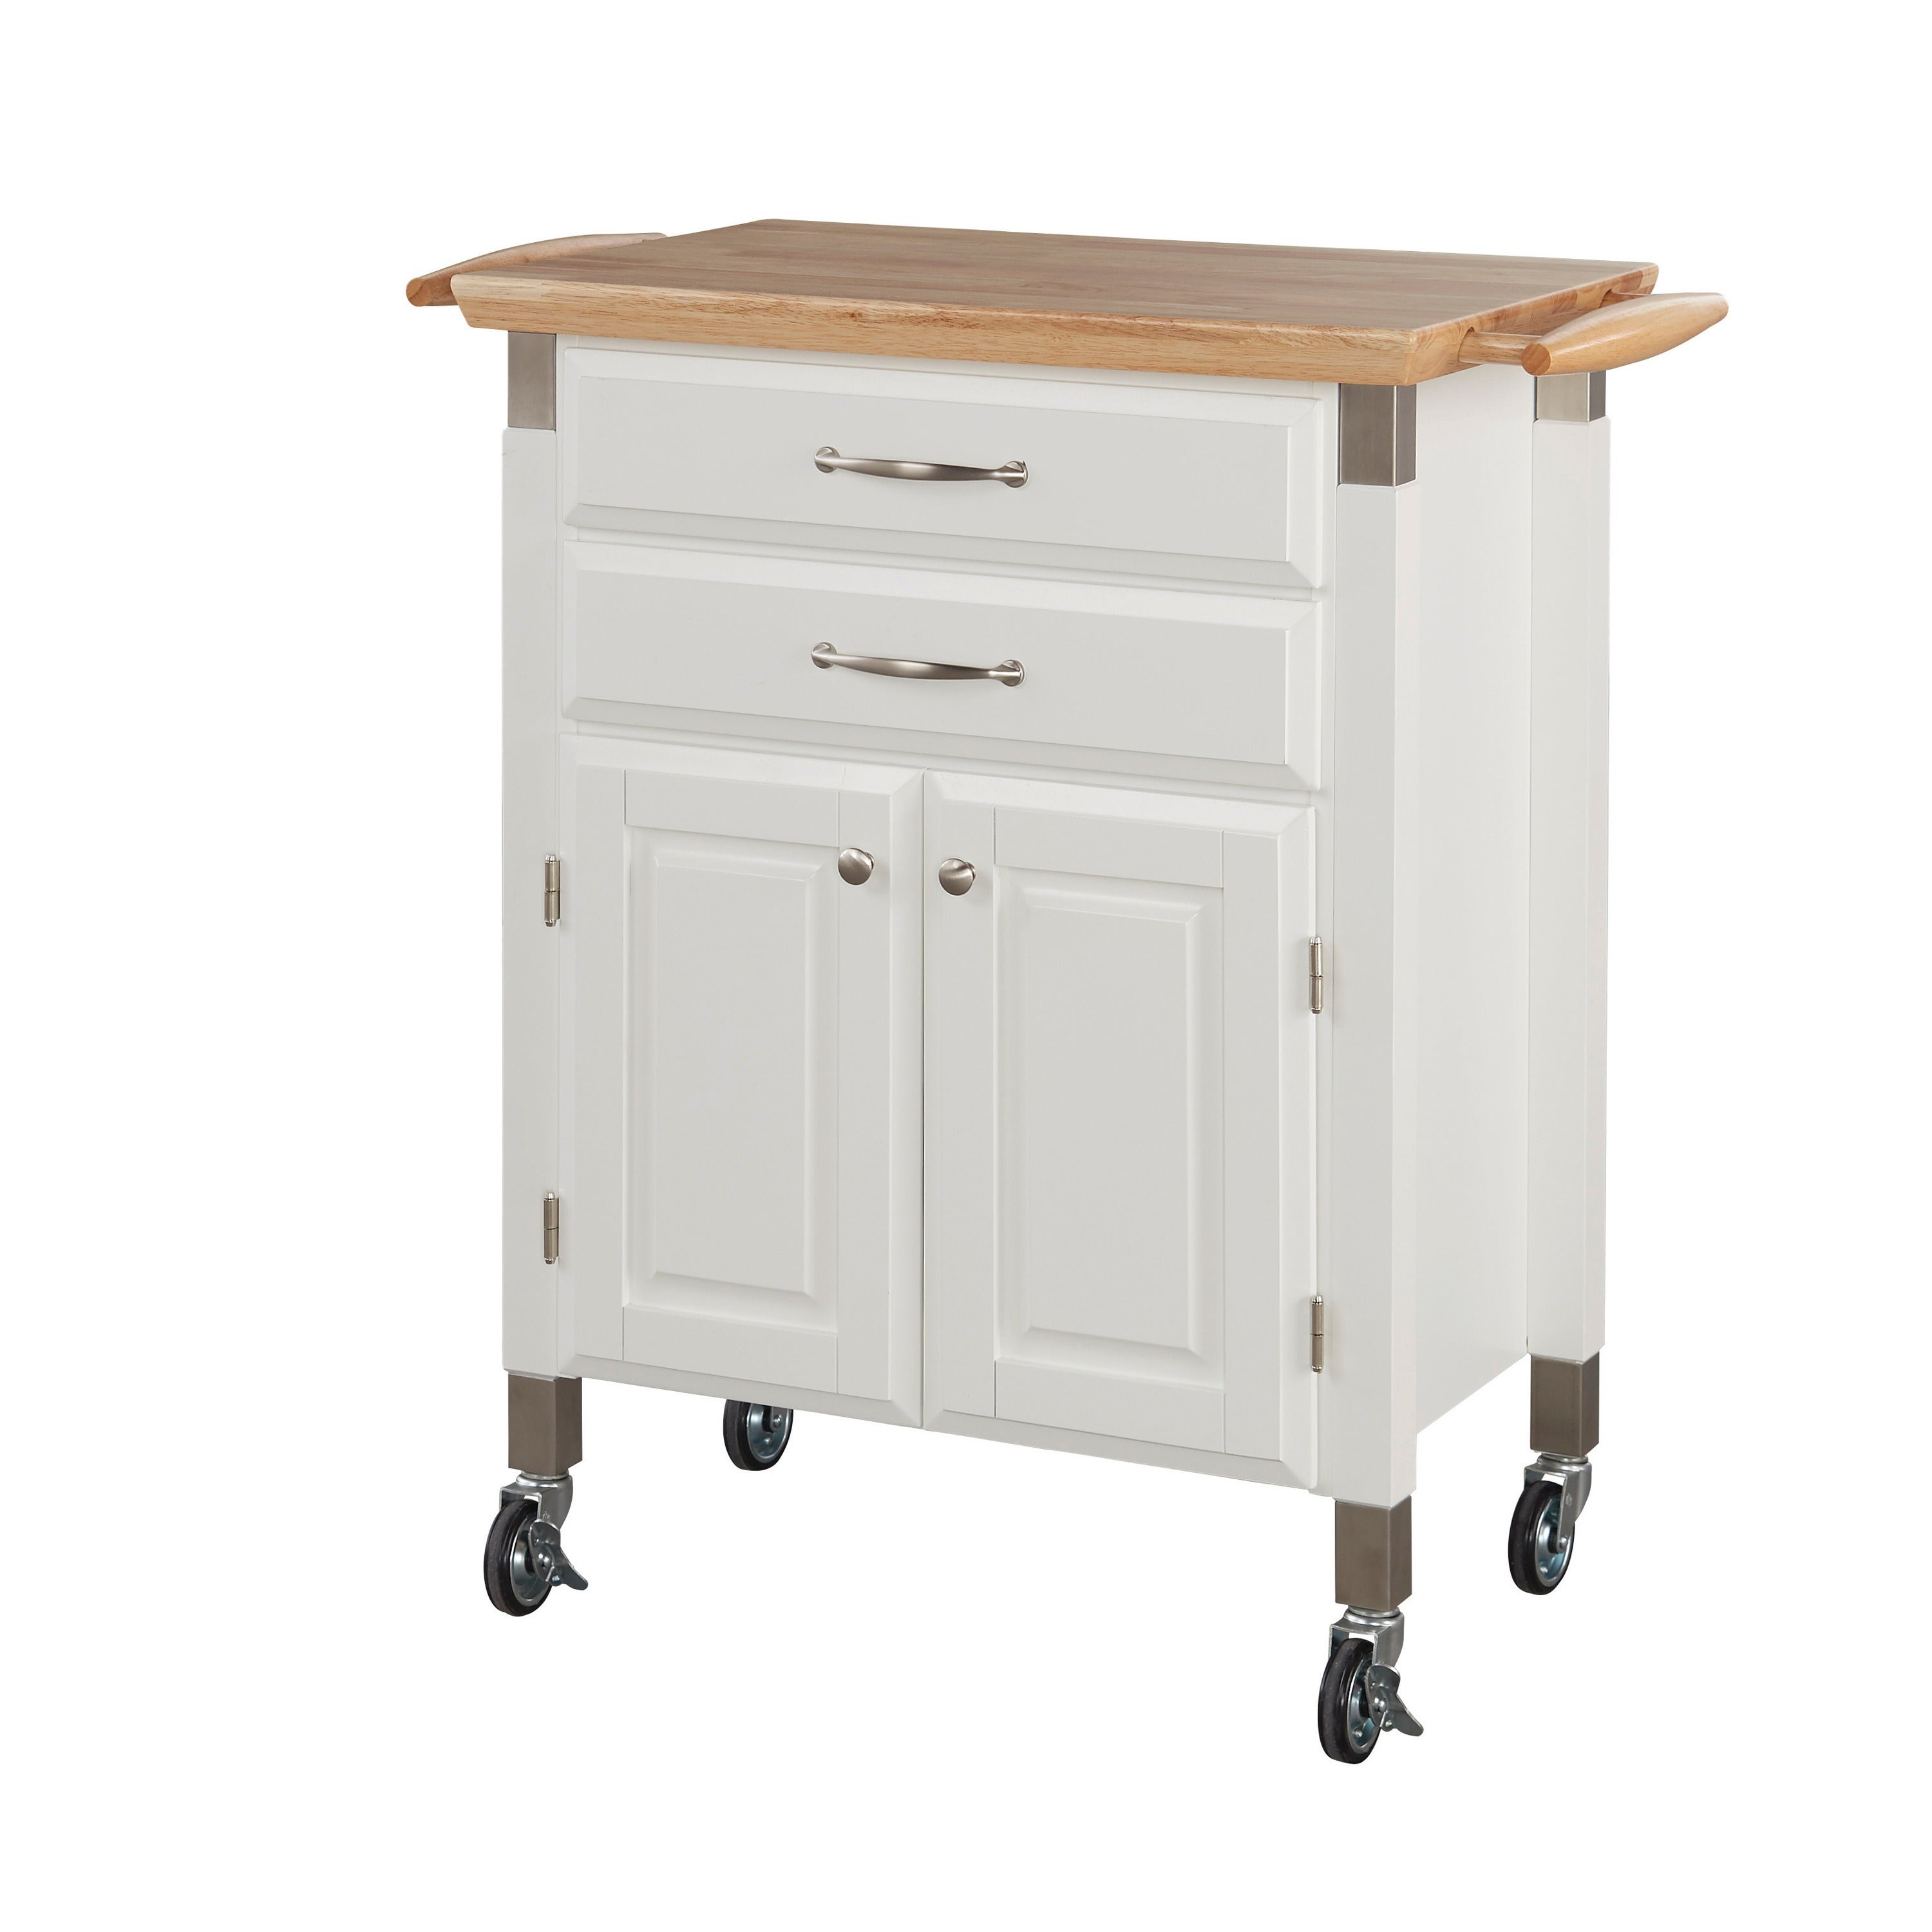 Dolly Madison Kitchen Cart by Home Styles (White) from $217.99 - Nextag